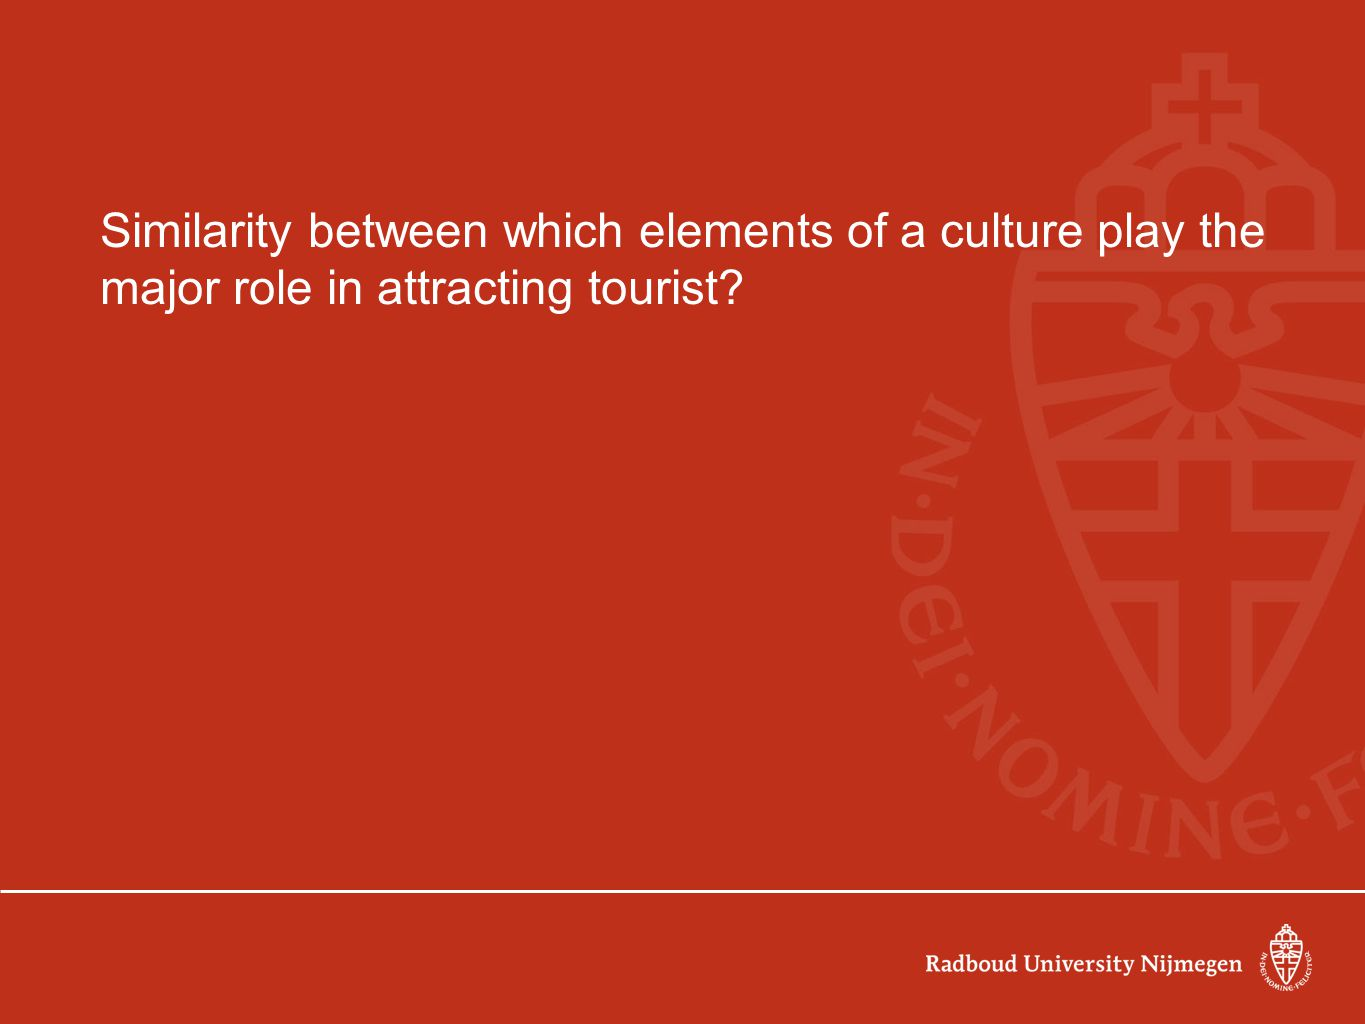 Similarity between which elements of a culture play the major role in attracting tourist